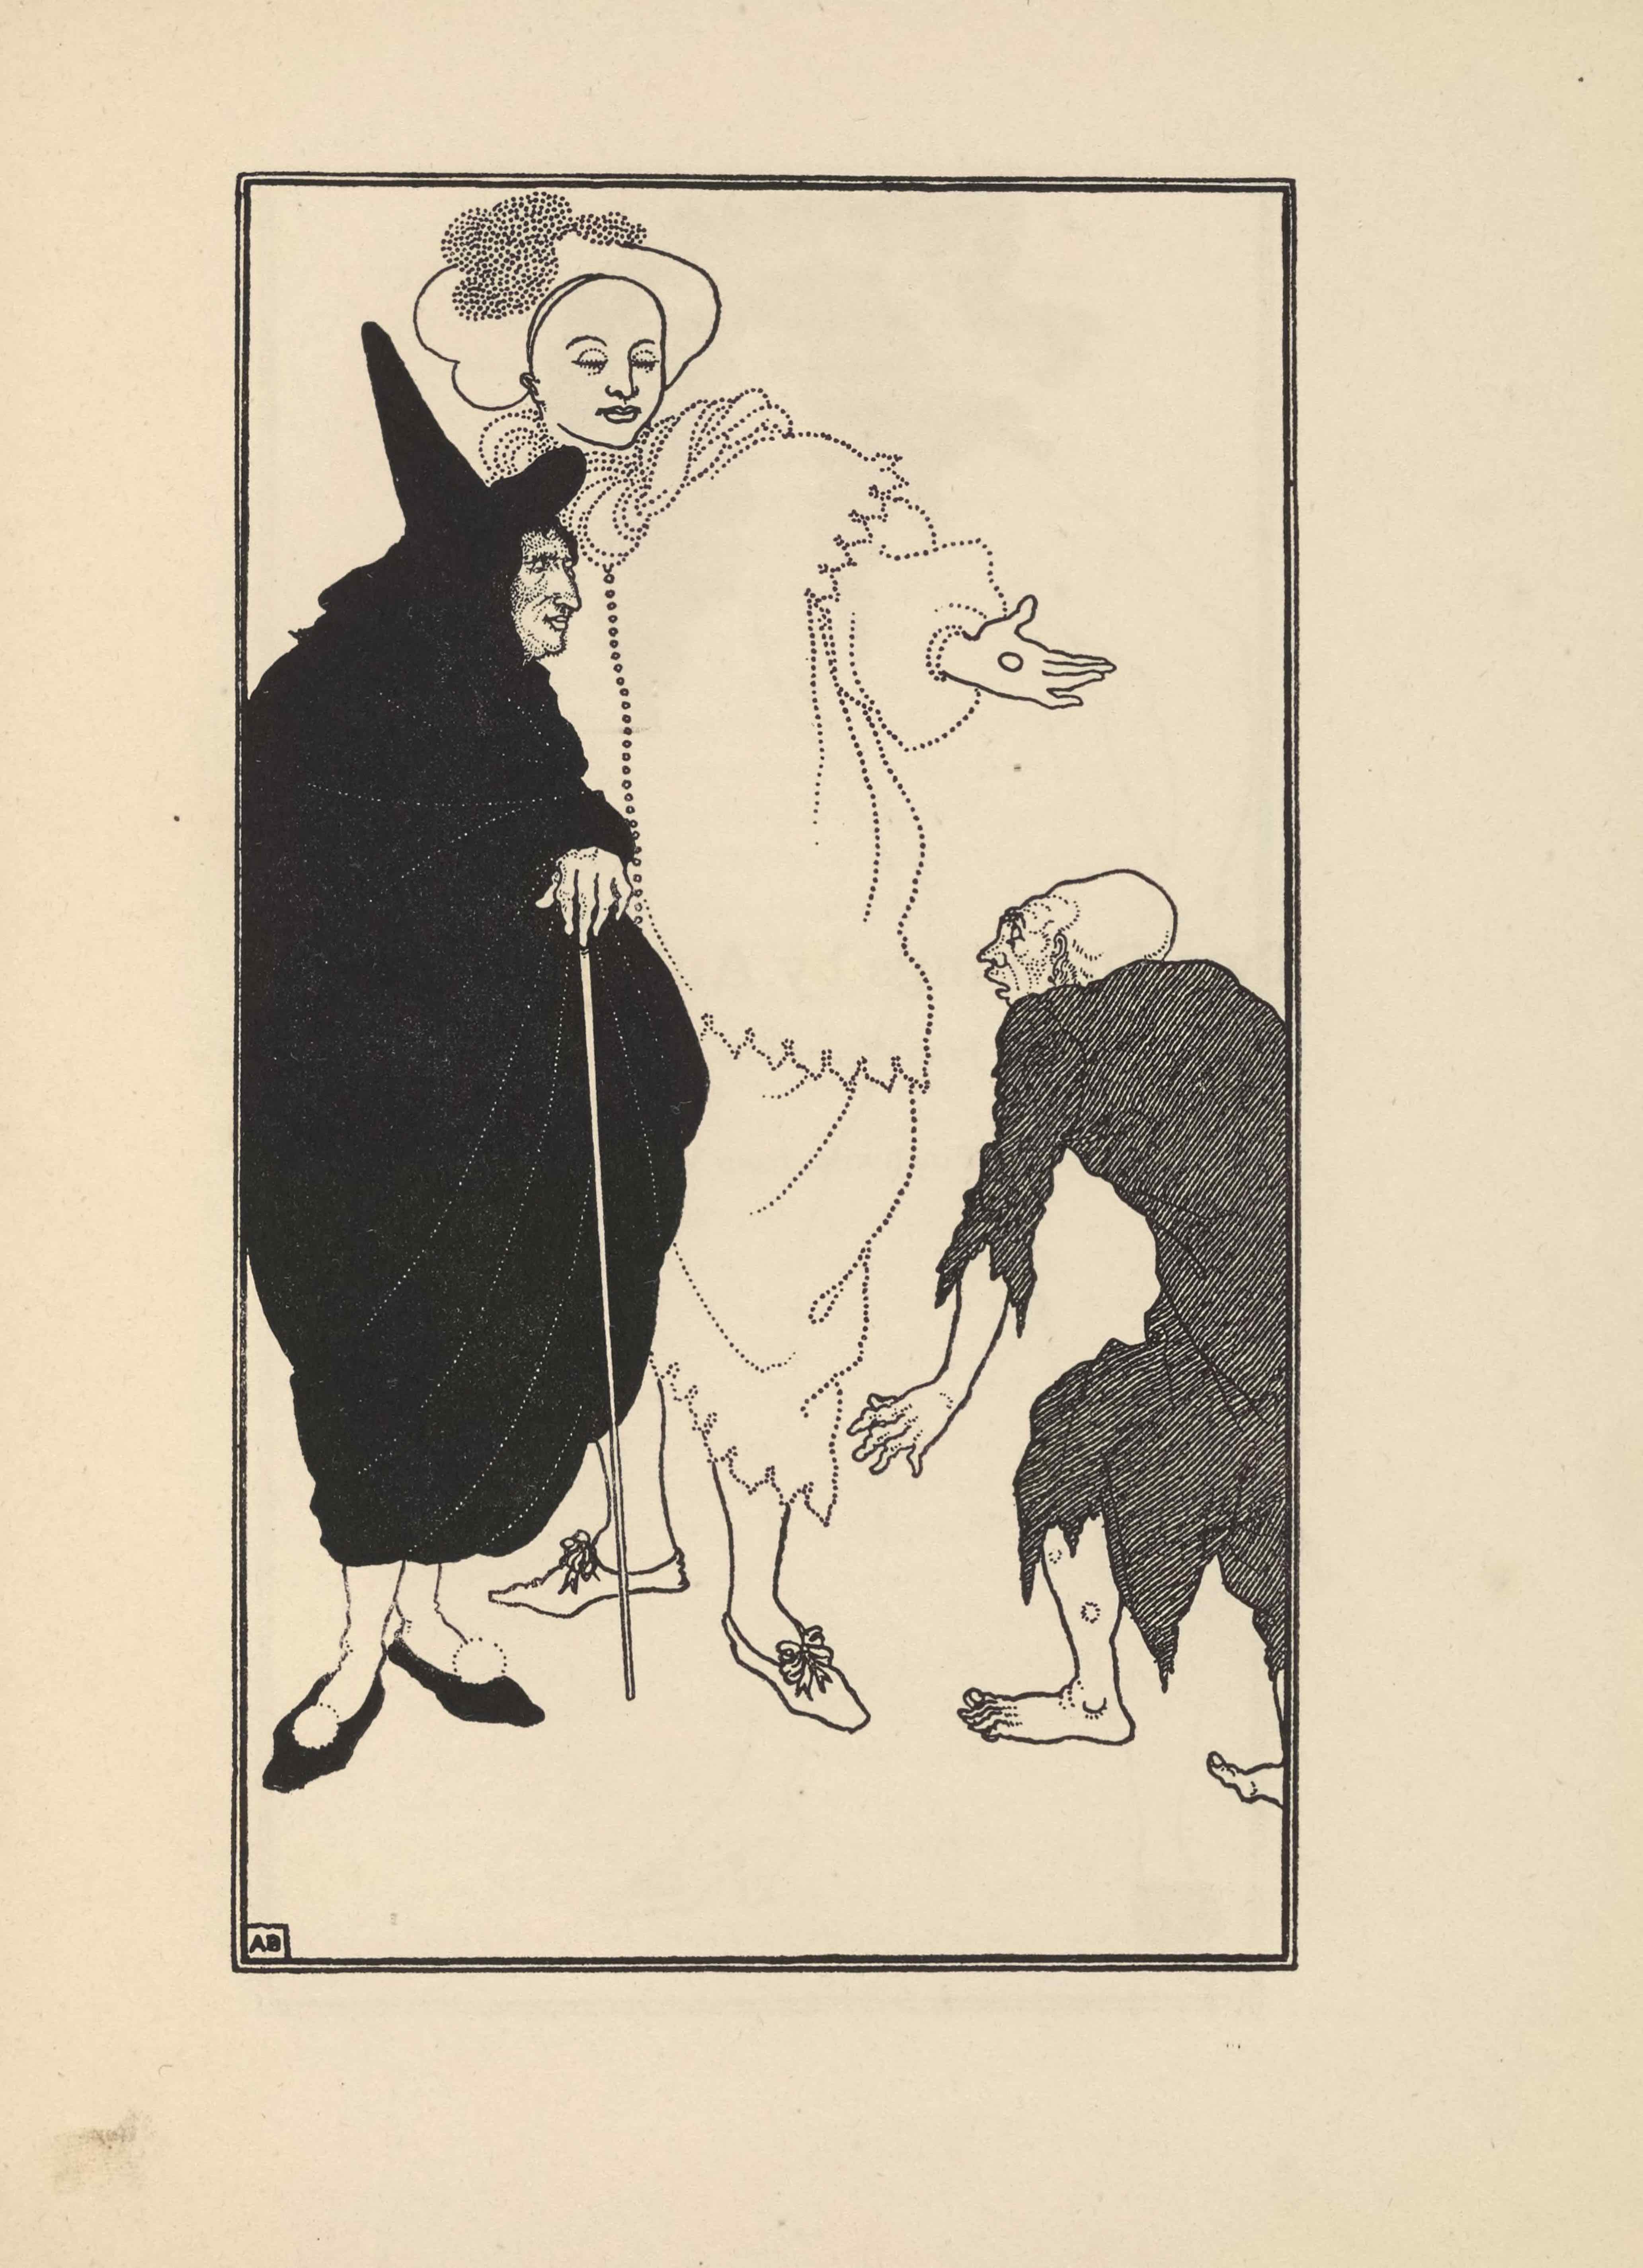 """The line-block reproduction of Beardsley's pen-and-ink illustration is framed in a double-lined border and is in portrait orientation. In the bottom left corner of the image is a small box with the artist's initials: """"AB."""" The illustration consists of three figures on a blank background. The leftmost figure is Sganarelle, servant to Don Juan, disguised as a doctor. He is dressed in a loose black cloak which extends down to his lower calves and faces right. His hands are crossed under his draped chest and his right hand extends from its sleeve, gripping a straight and narrow cane. He wears a black conical hat and black slippers with white balls where laces would normally be. Standing behind and to the right of Sganarelle is Don Juan, disguised in a country costume. His white hat, stippled around the crown, almost reaches the top border of the illustration. His clothes are all white; the fabric is drawn with stippling at the edges and creases. His loose tunic is long sleeved and tiered so that it has a division at the shoulders. Both the shoulders and the hem of the shirt follow a uniform jagged pattern. Don Juan's trousers are loose and extend down to the calves; they are drawn via the same stippling technique and feature the same jagged pattern at the bottoms. Only his left pant leg is visible as his right leg is behind Sganarelle. He has white slippers on that feature ribbons in bowties for laces. His left hand is extended out with a circular object, a coin, in his palm, which he appears to offer the beggar. The beggar stands on the right edge of the illustration, facing and looking up at Don Juan, with his back to the viewer. He looks to be just walking into the frame so his right leg is only partially visible. He is hunched over and stands at about waist height in front of Don Juan. The beggar is bald and his head is oblong. He is wearing a ragged dark tunic that extends past his knees and covers his arms to his elbows. His feet are bare and he has sores on his l"""